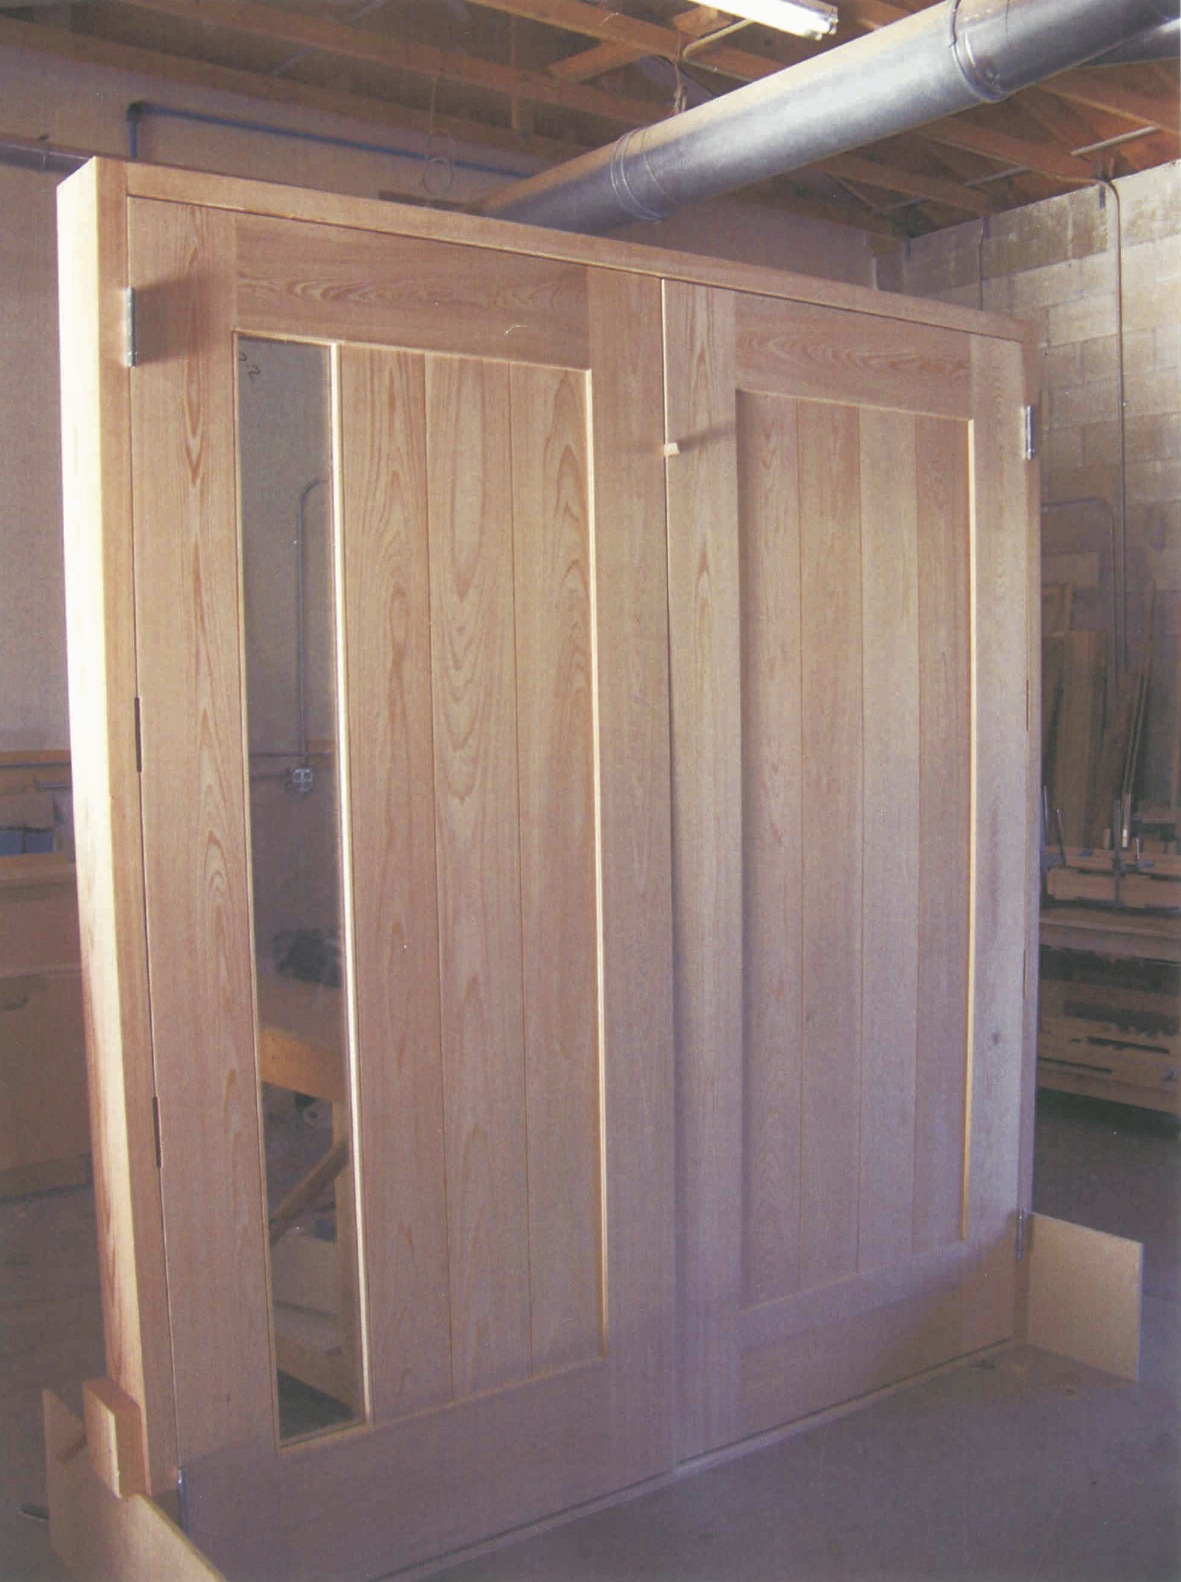 Cypress door system with one glass pane, in process -<br />Nassau, Bahamas